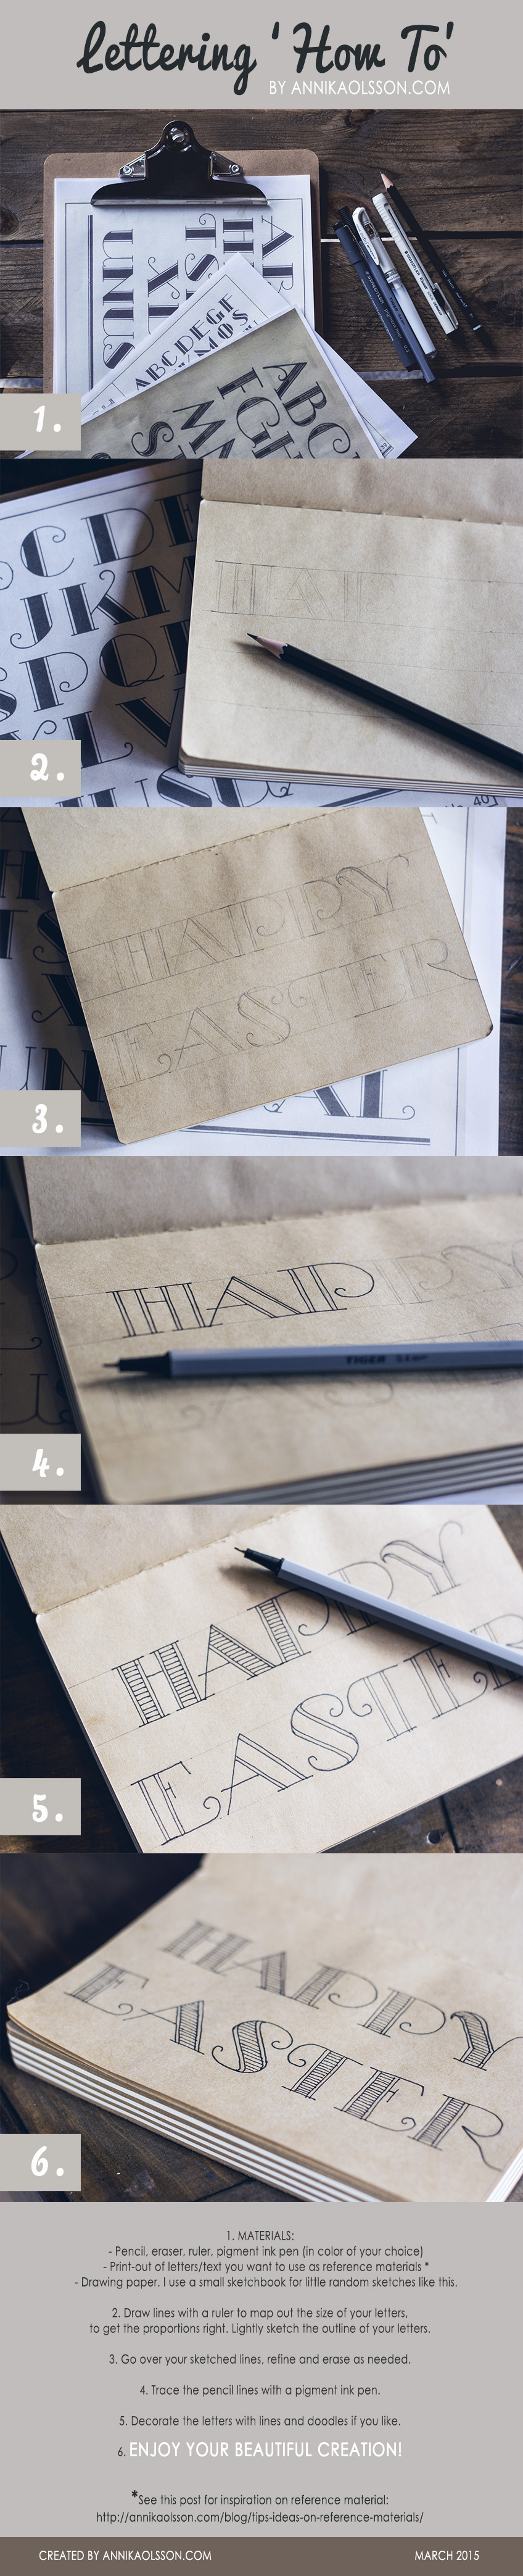 Easy Lettering tutorial with step-by-step images by Annika Olsson at www.annikaolsson.com